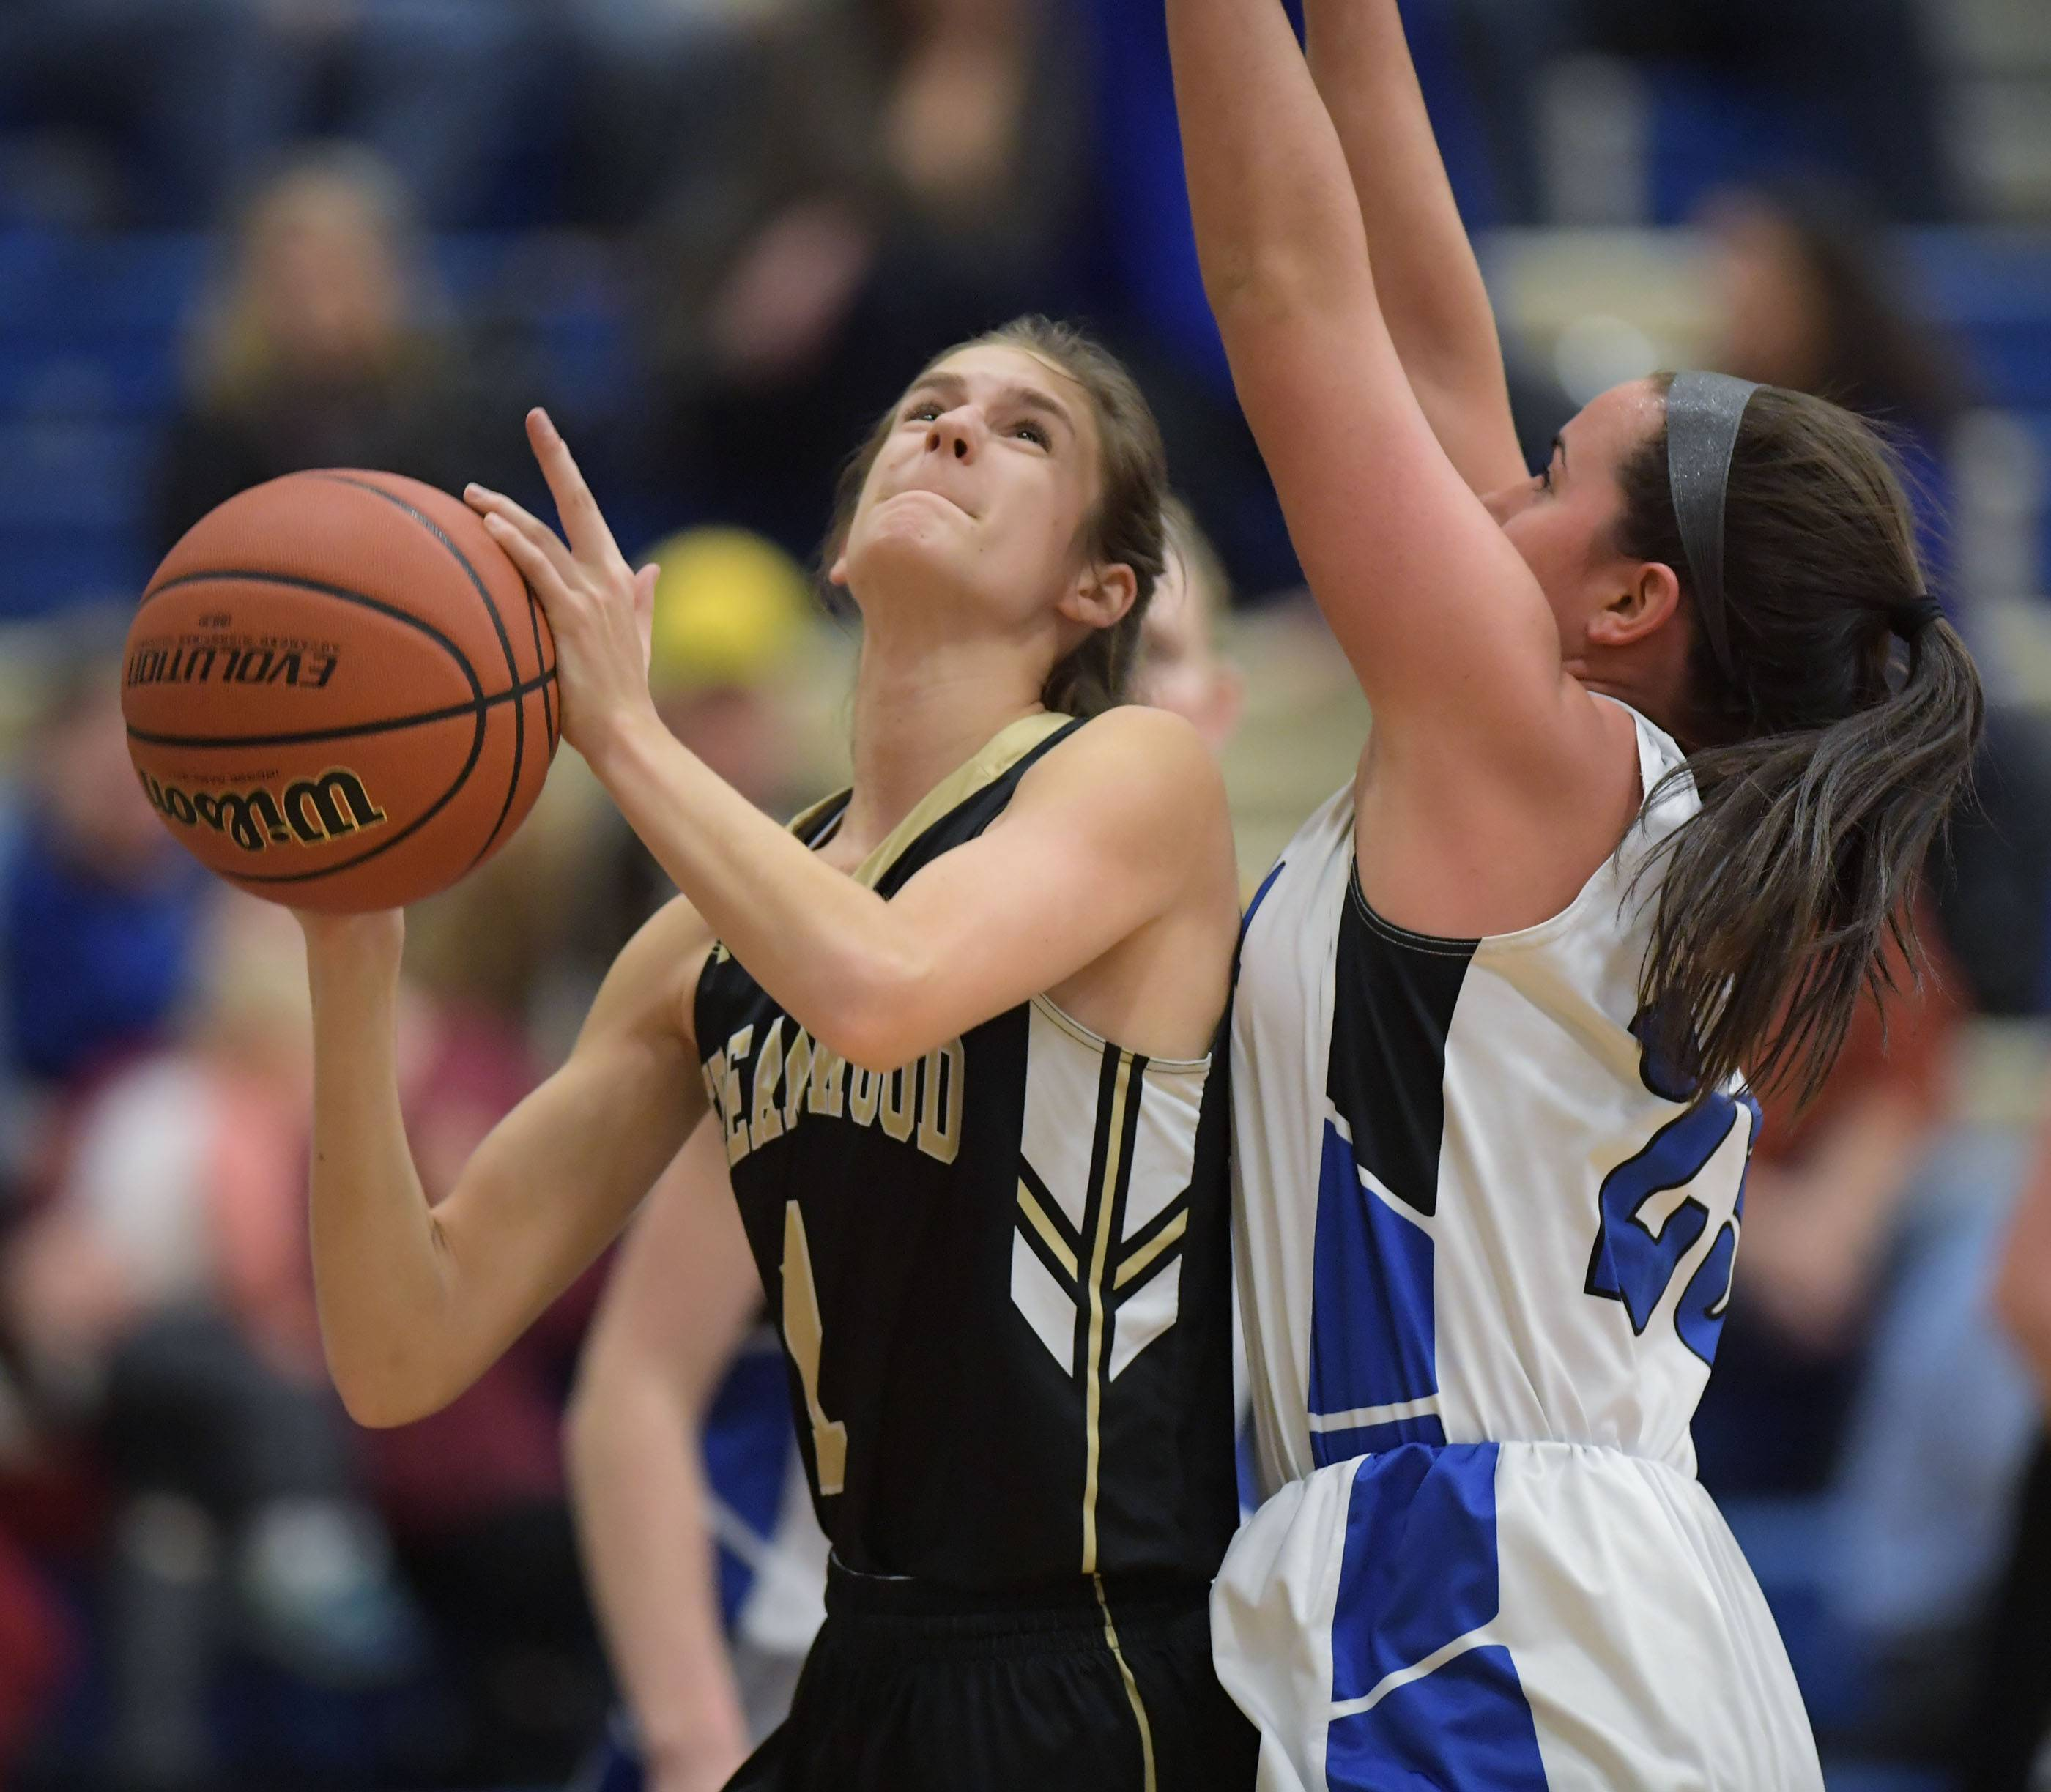 Streamwood's Maddi Exline gets shot against Geneva's Margaret Whitley during a girls basketball game Tuesday in Geneva.